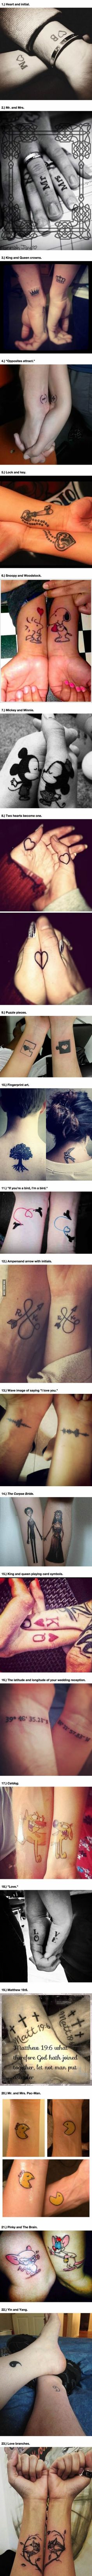 Whether You Like Tattoos Or Not, How These 23 Couples Sealed Their Love Is Touching.